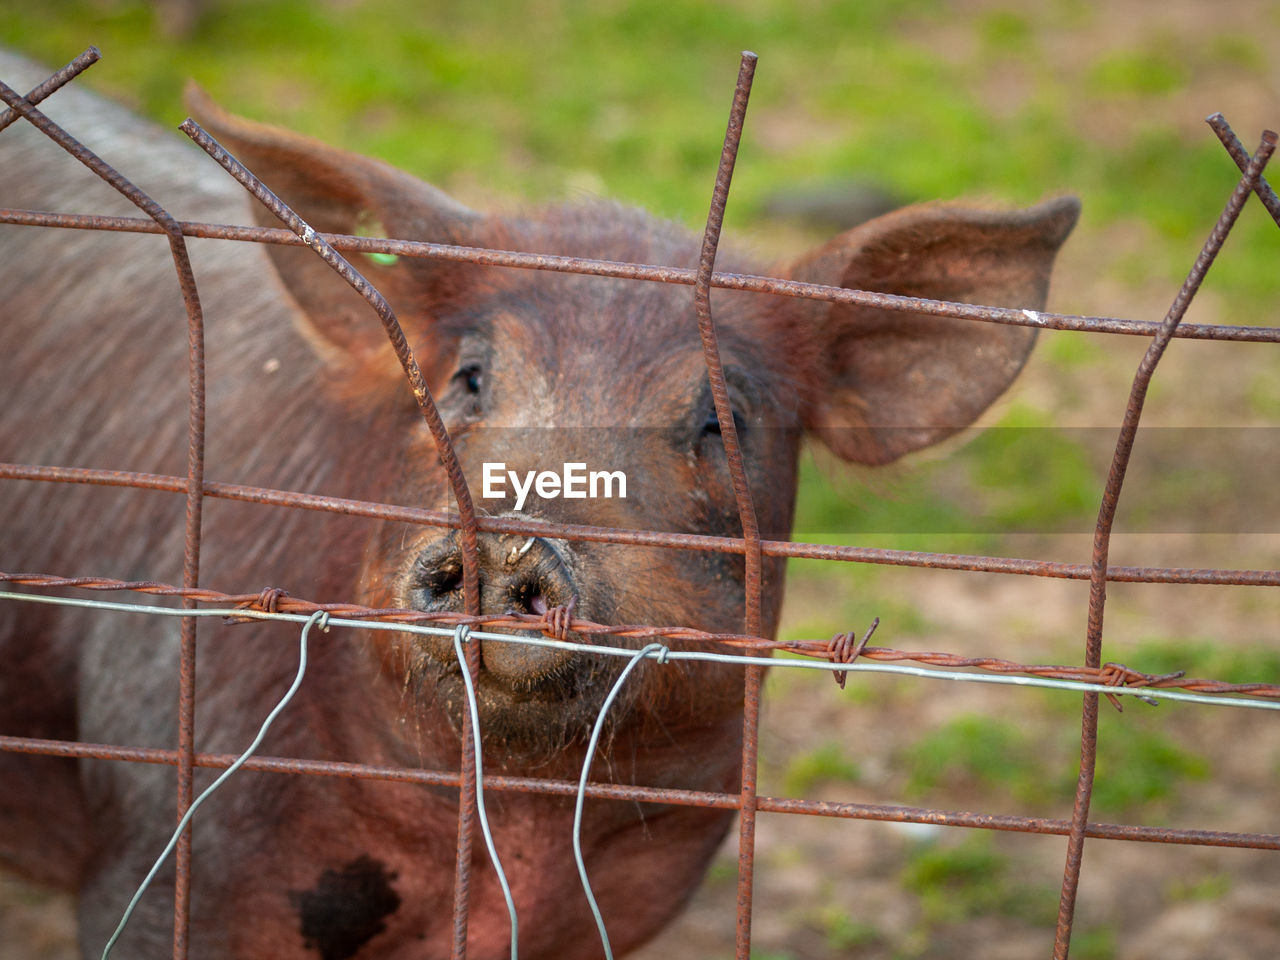 mammal, fence, animal, barrier, animal themes, boundary, focus on foreground, metal, one animal, no people, day, close-up, portrait, nature, animal wildlife, security, domestic animals, animal body part, livestock, vertebrate, outdoors, animal head, herbivorous